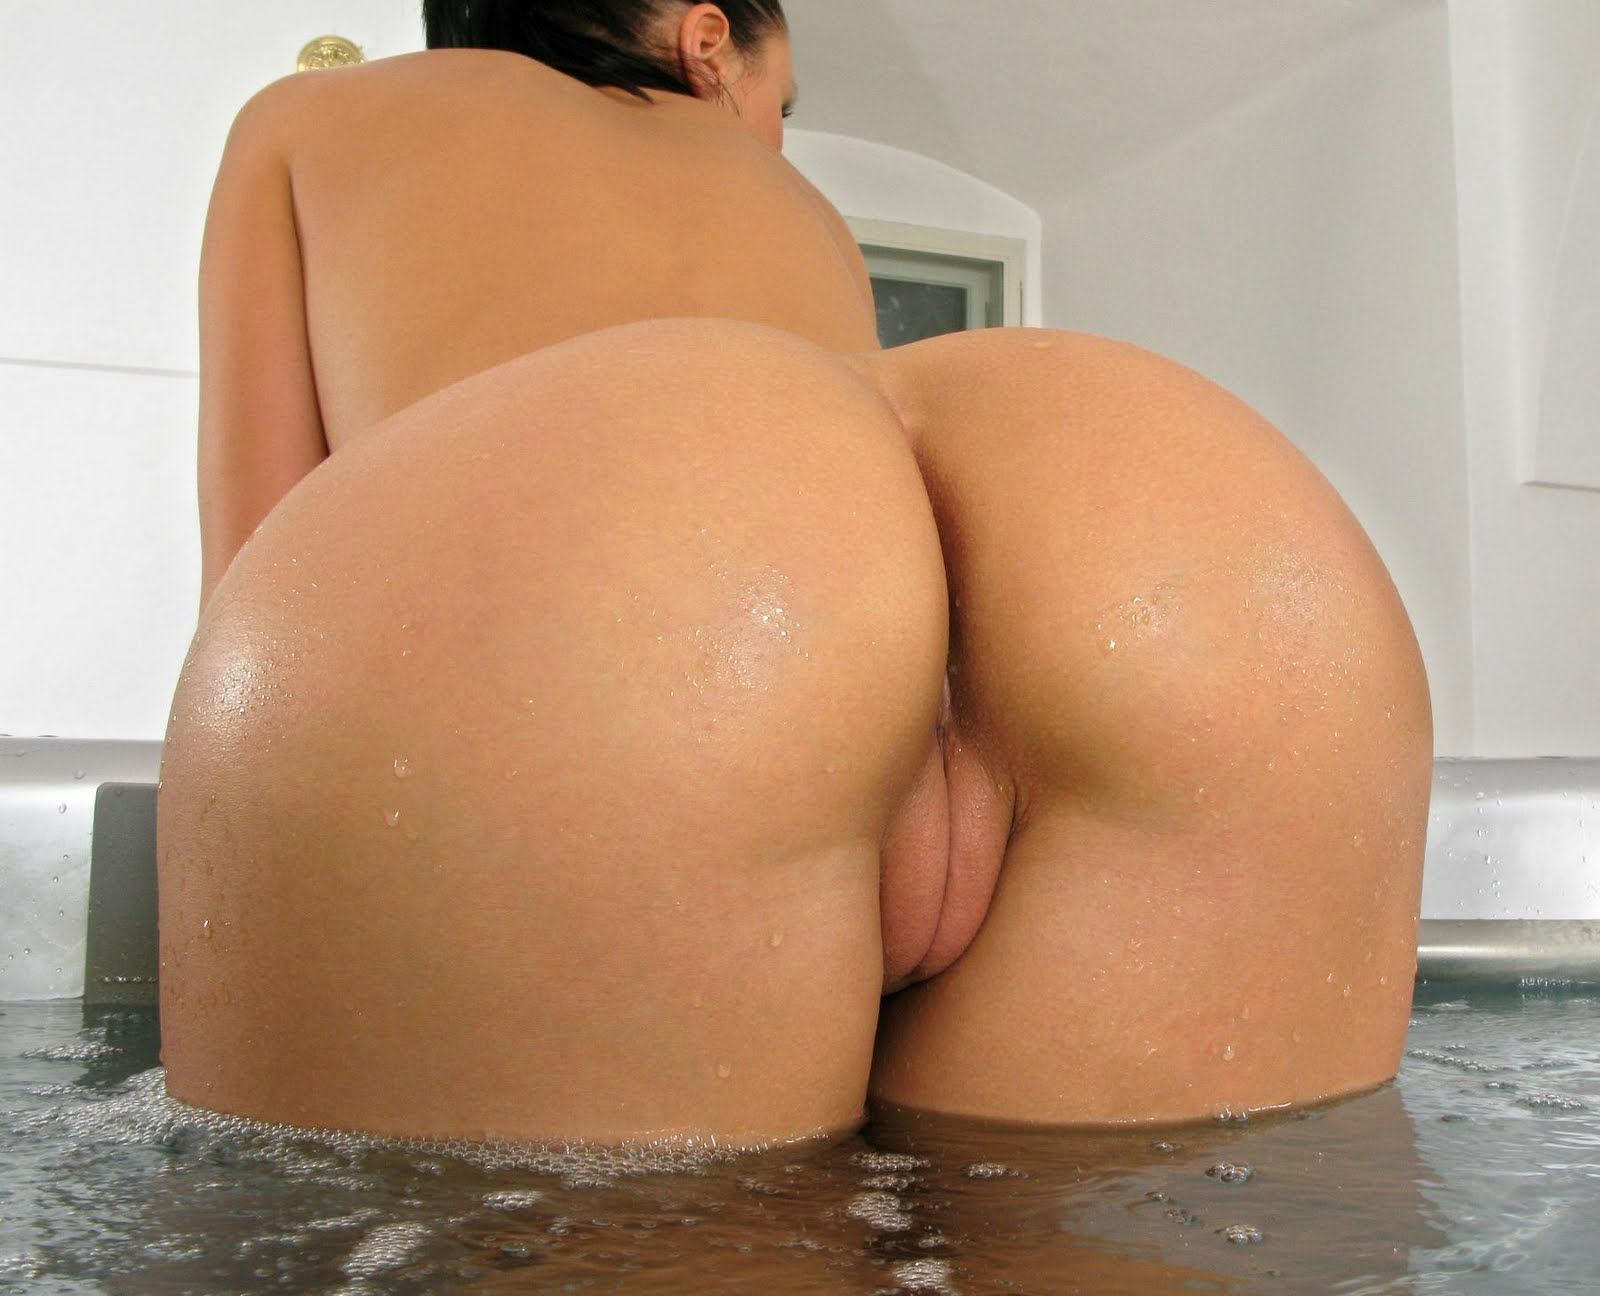 Wet pussy and big ass